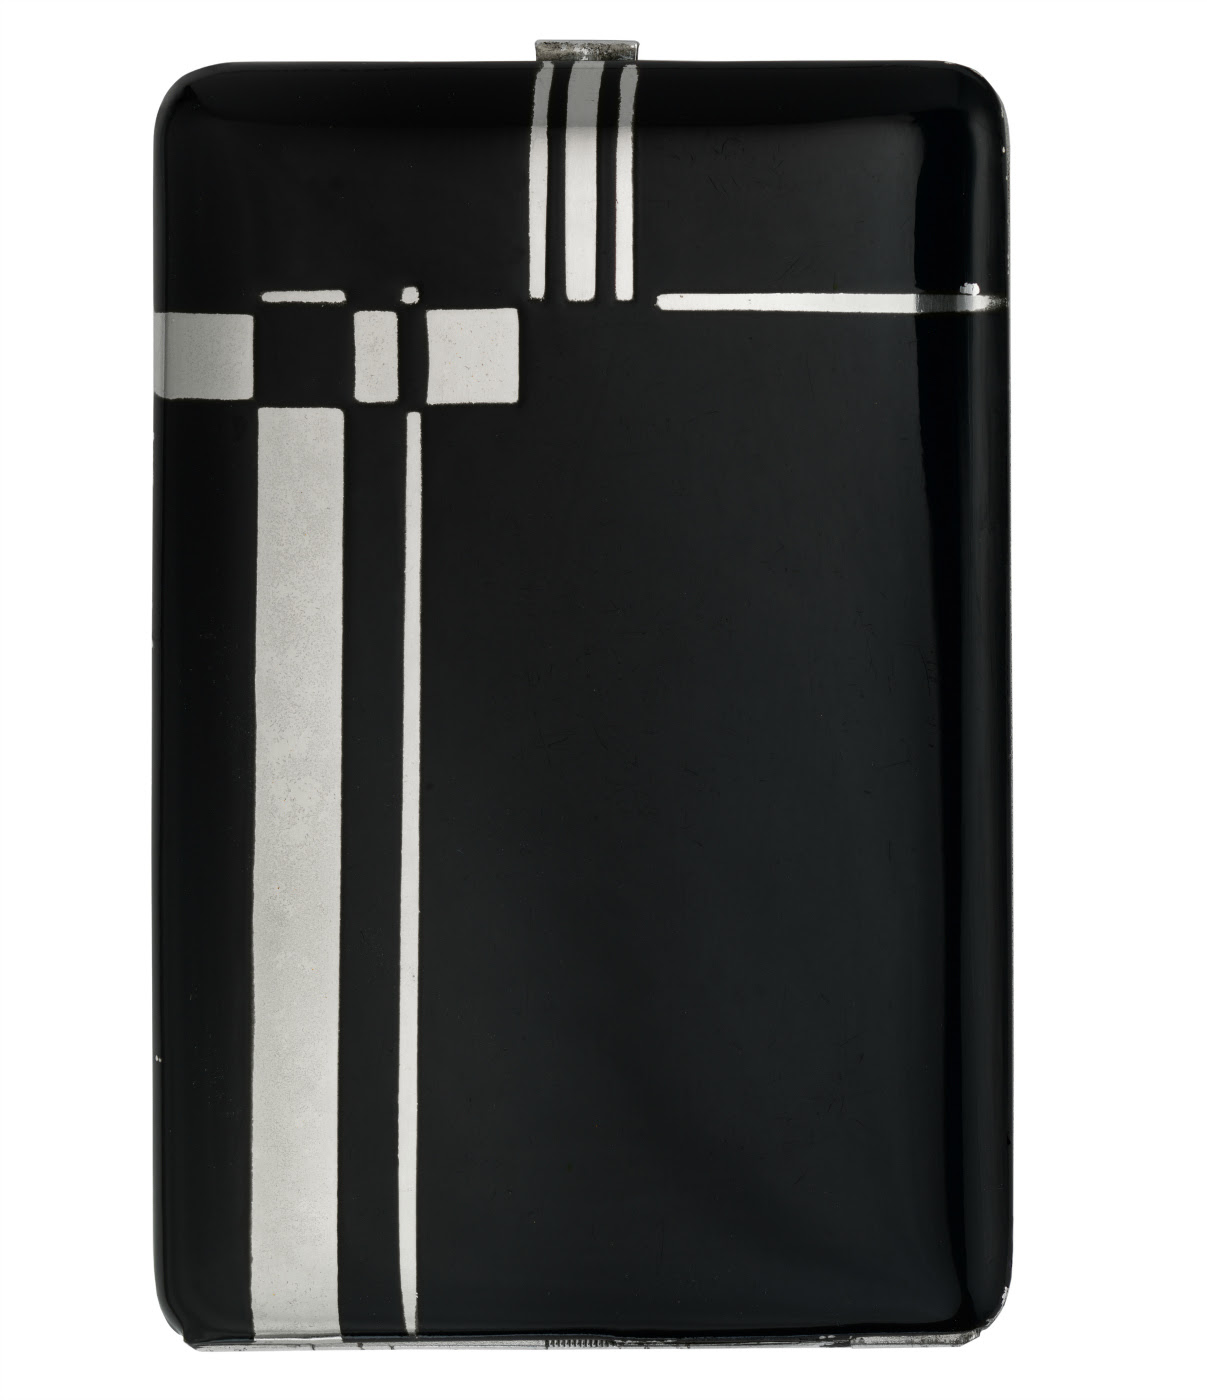 Cigarette cases (France, 1934), black enamel on silvered metal (© Rodney and Diana Capstick-Dale)